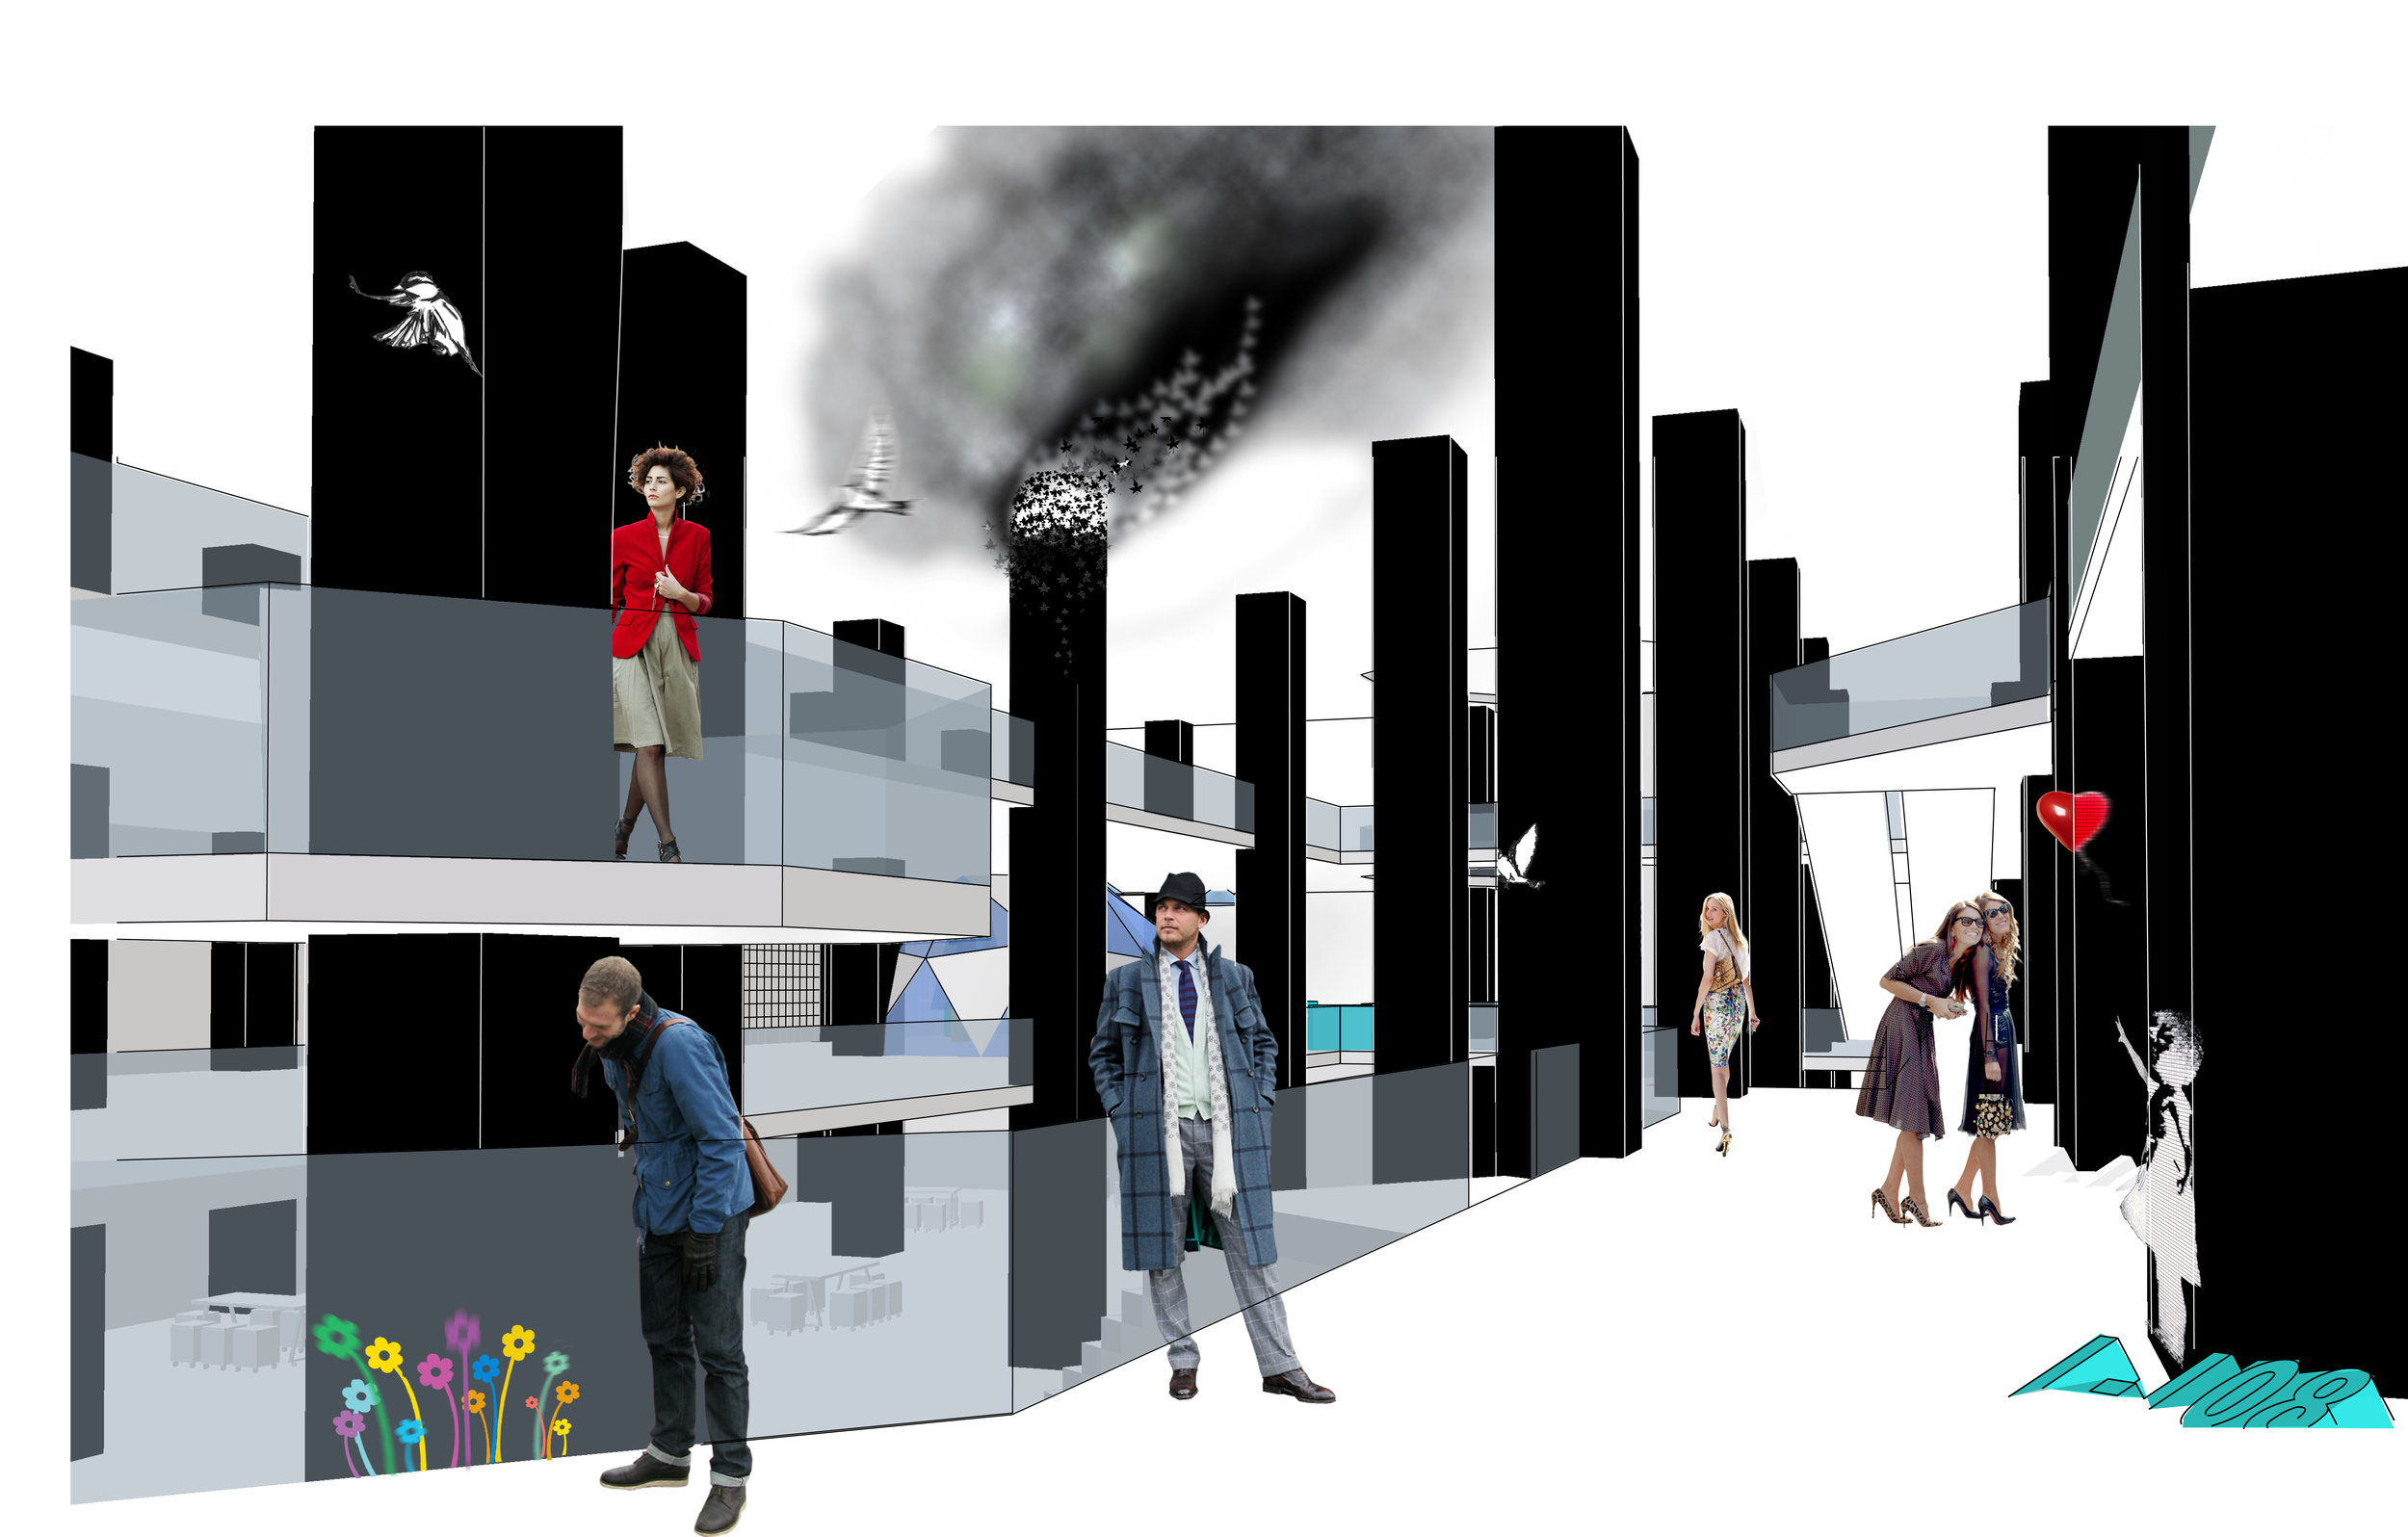 13_02_Adelle_Lin_Tall Tales Perspective RENDER.jpg